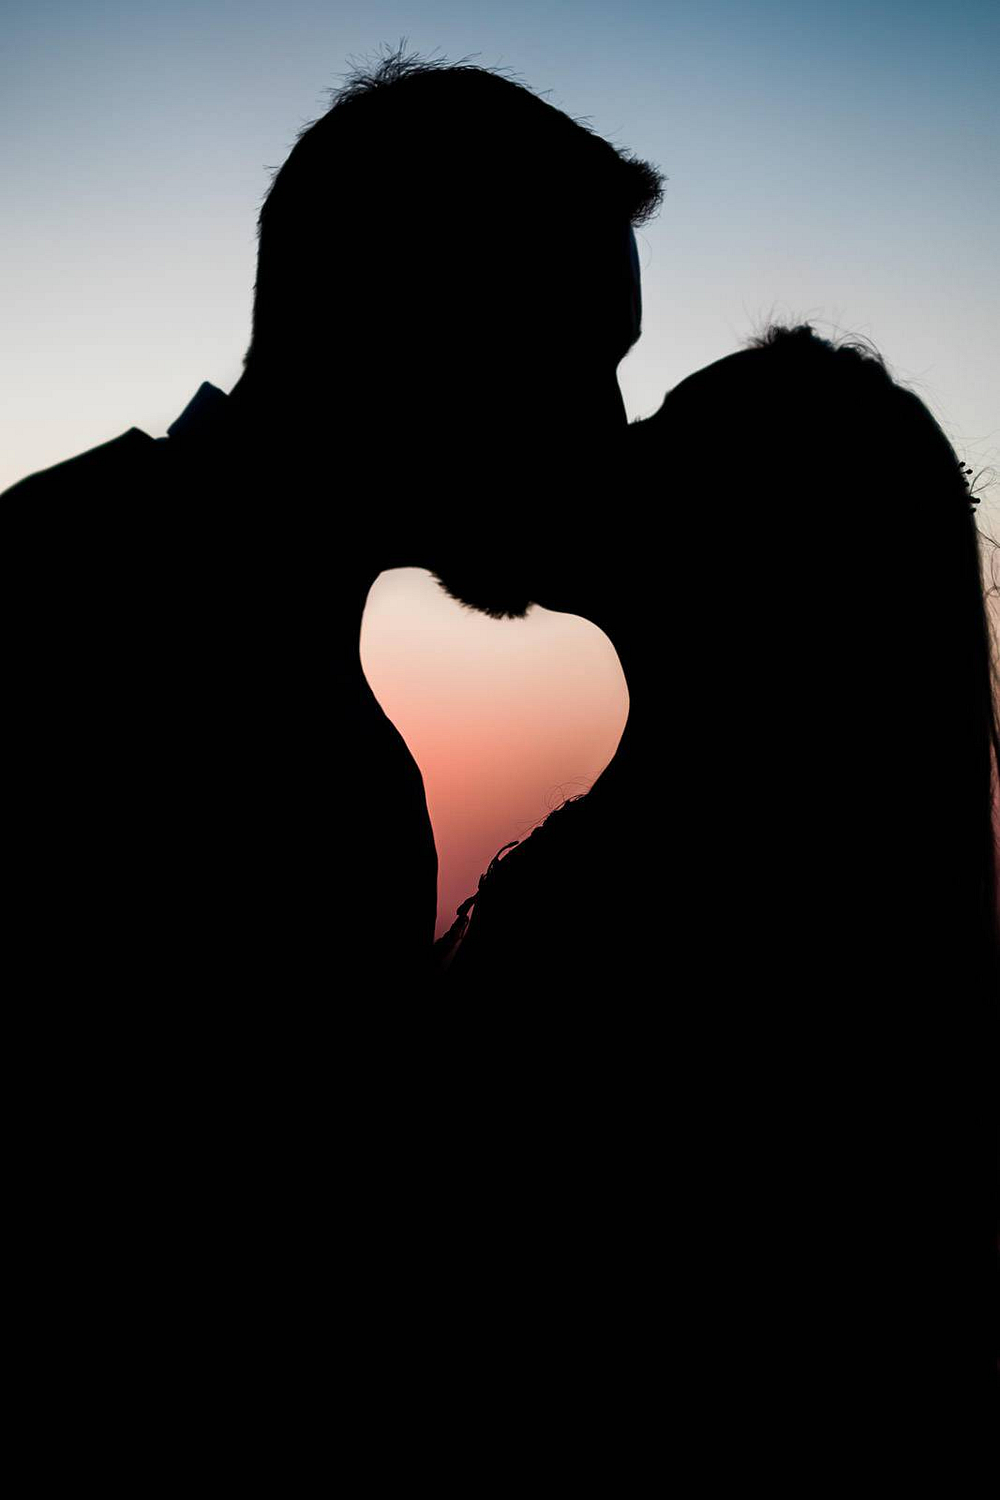 Bride & Groom silhouette with heart shape